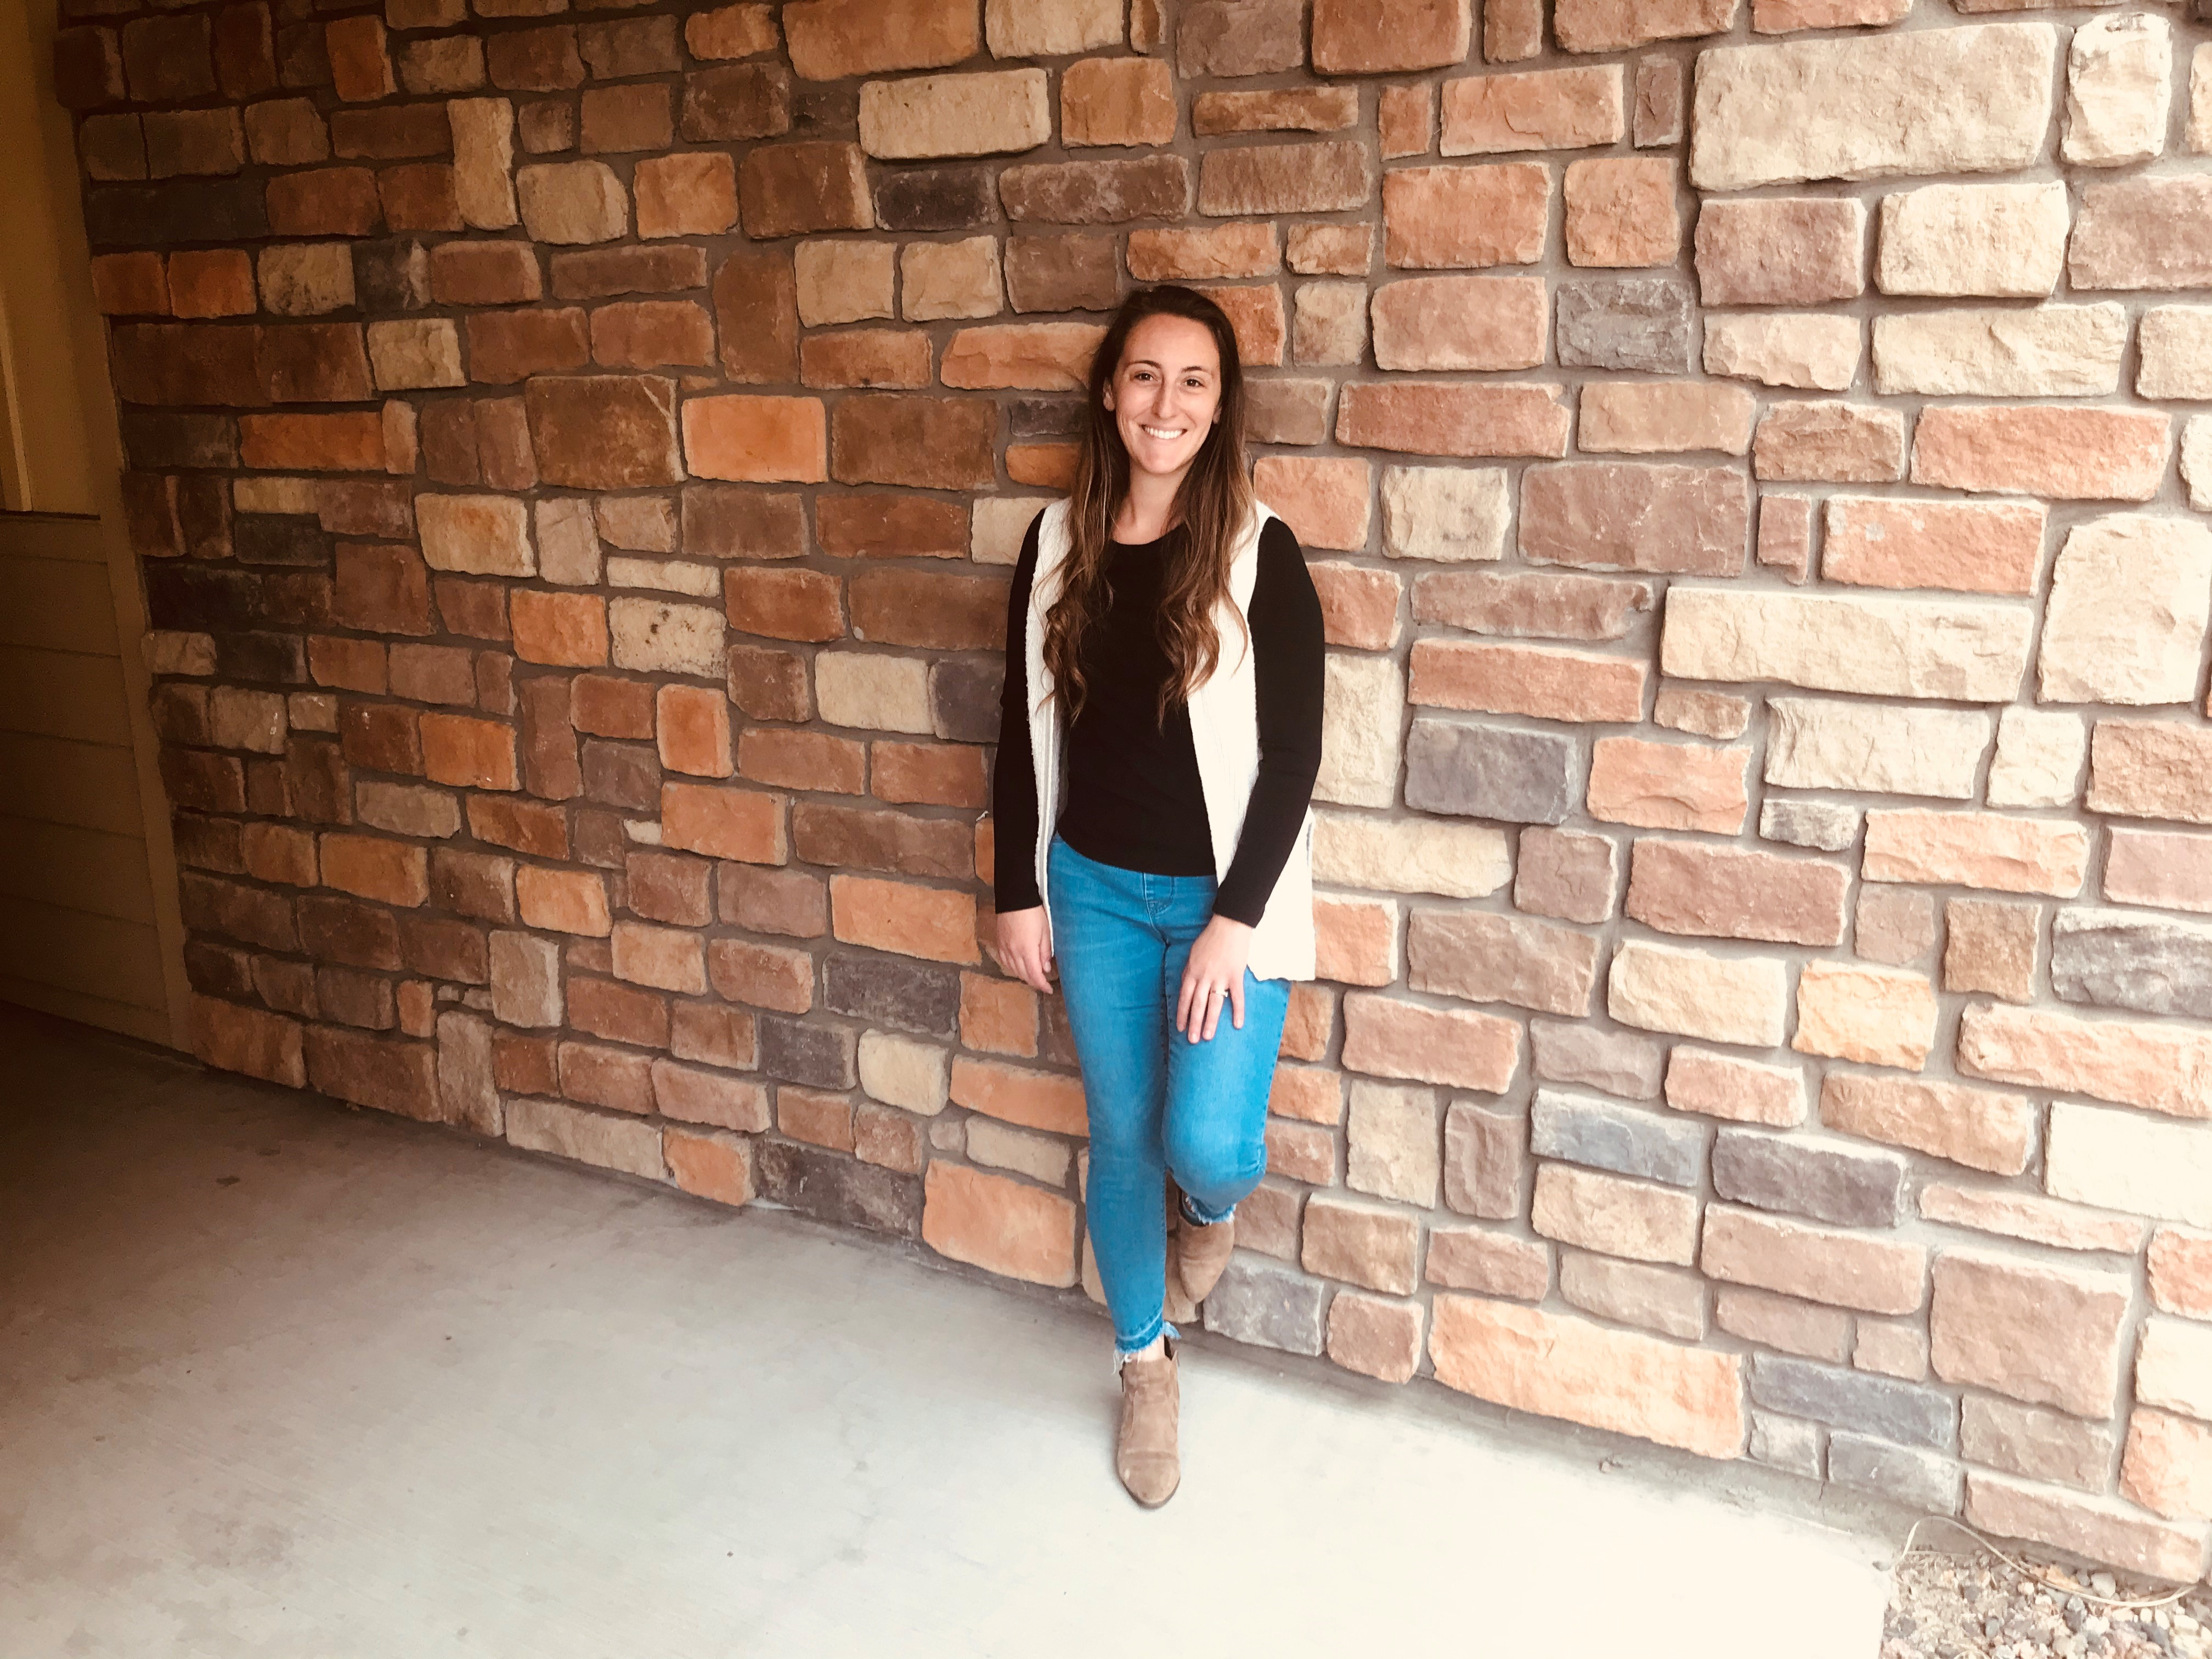 Miranda Guyaux-Mitchell smiles and poses standing in front of a brick wall.